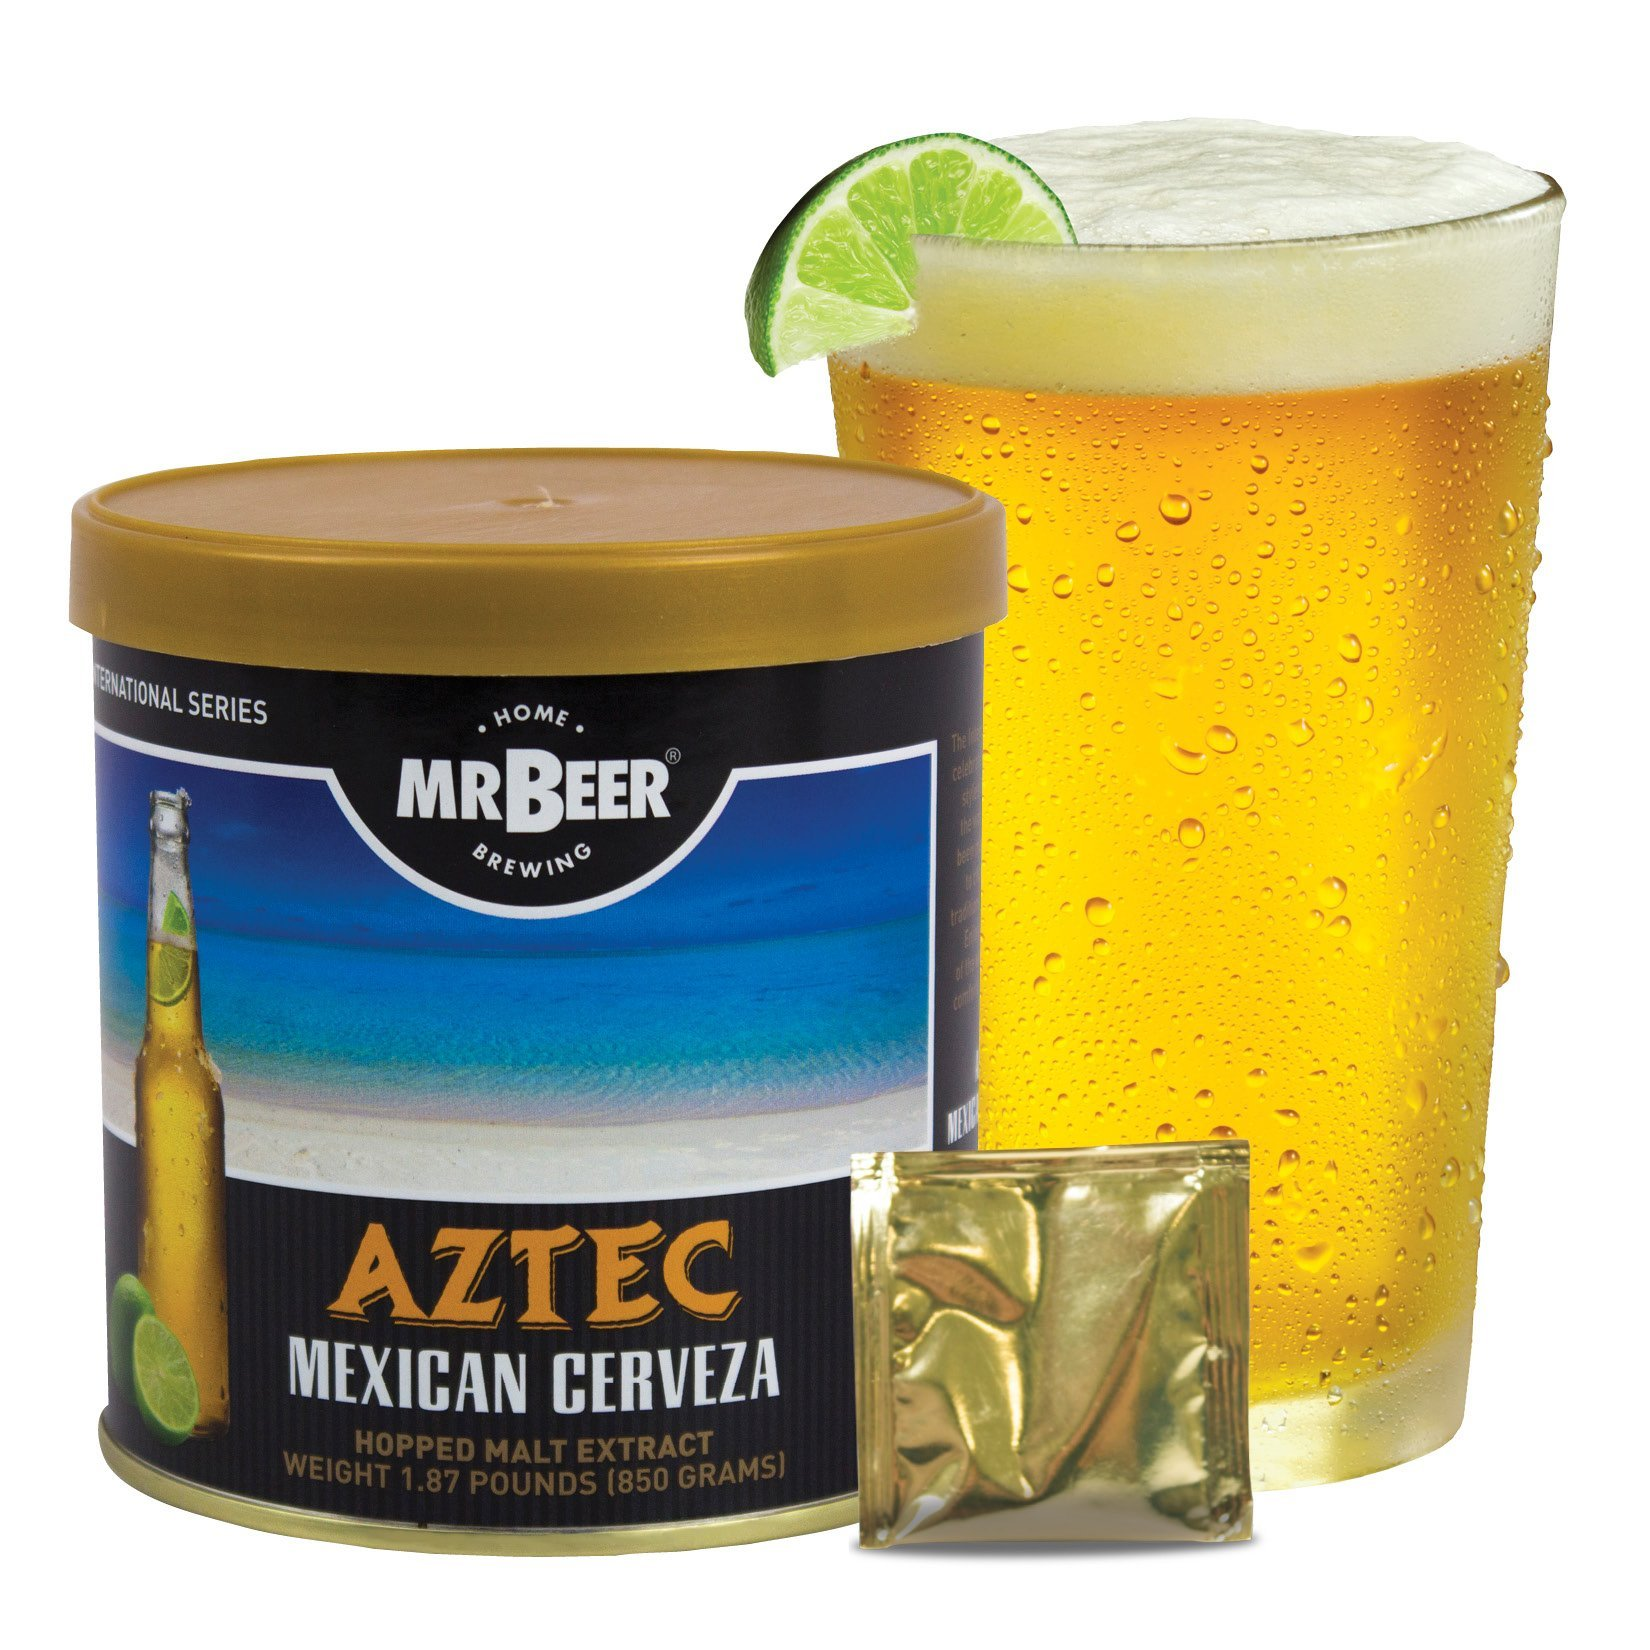 Mr. Beer Aztec Mexican Cerveza 2 Gallon Homebrewing Craft Beer Making Refill Kit with Sanitizer, Yeast and All Grain Brewing Extract Comprised of the Highest Quality Barley and Hops